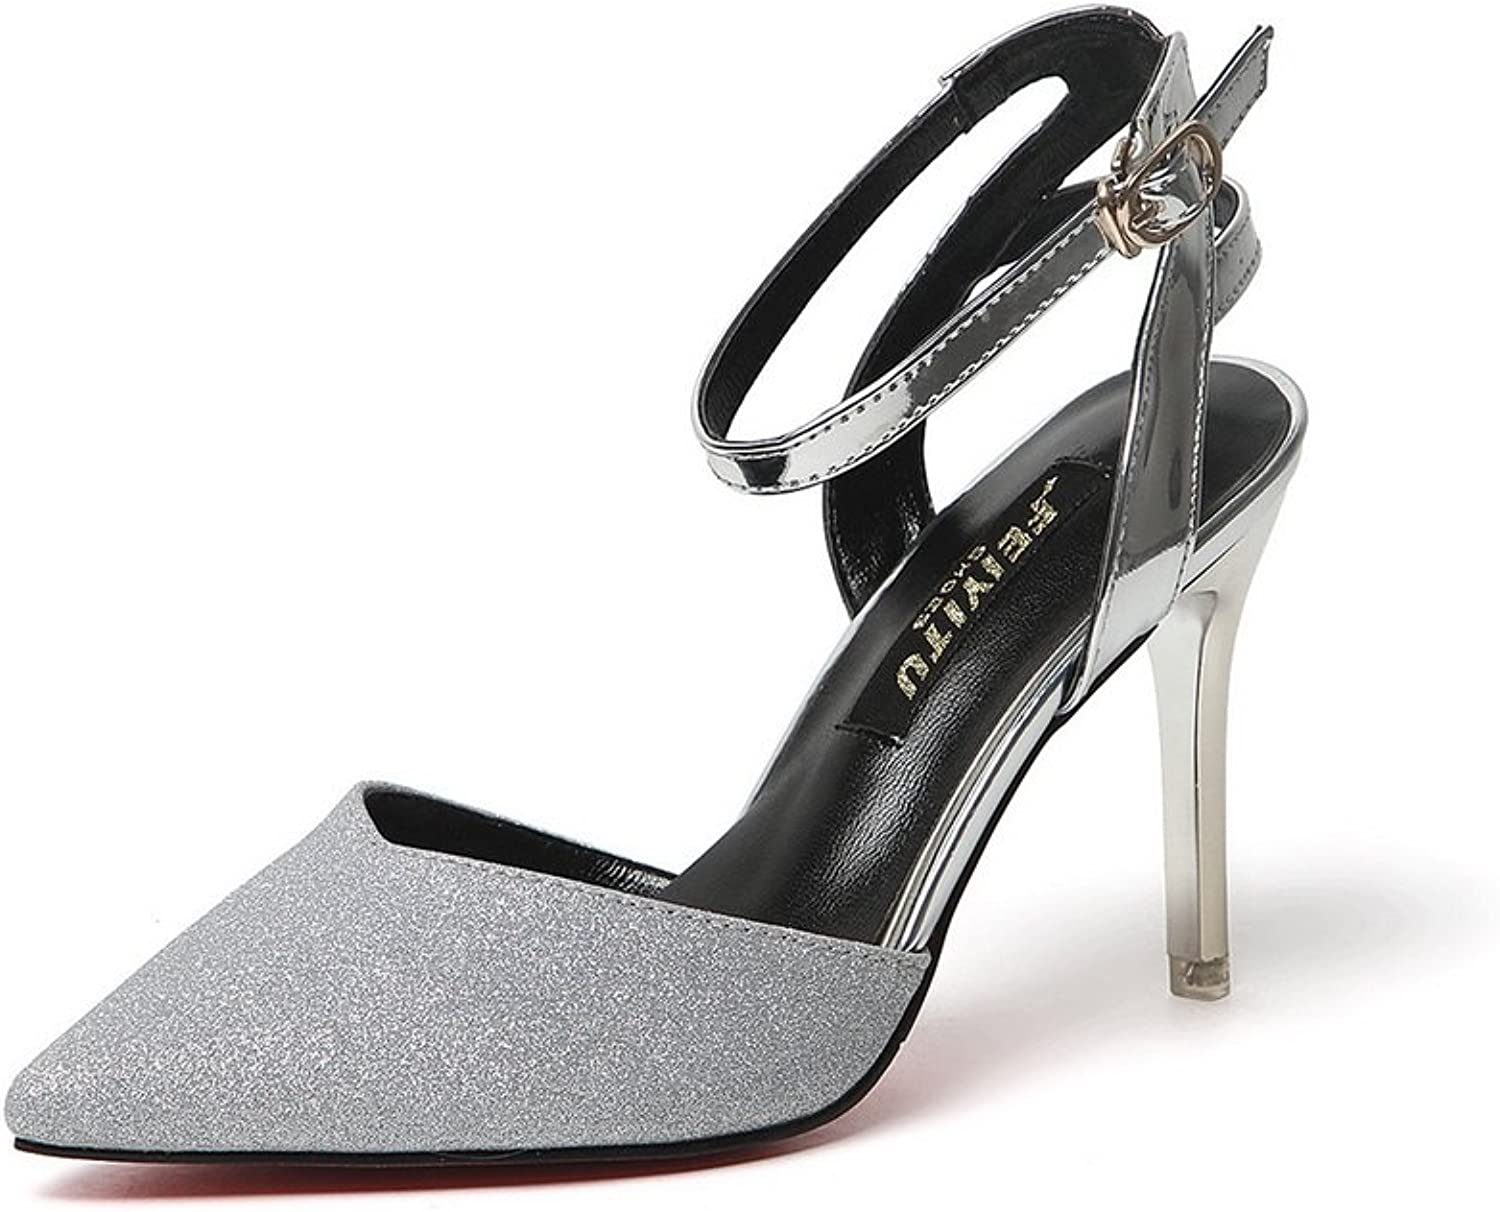 1TO9 Womens Spikes Stilettos Pointed-Toe Ankle-Wrap Silver Patent-Leather Pumps shoes - 7 B(M) US